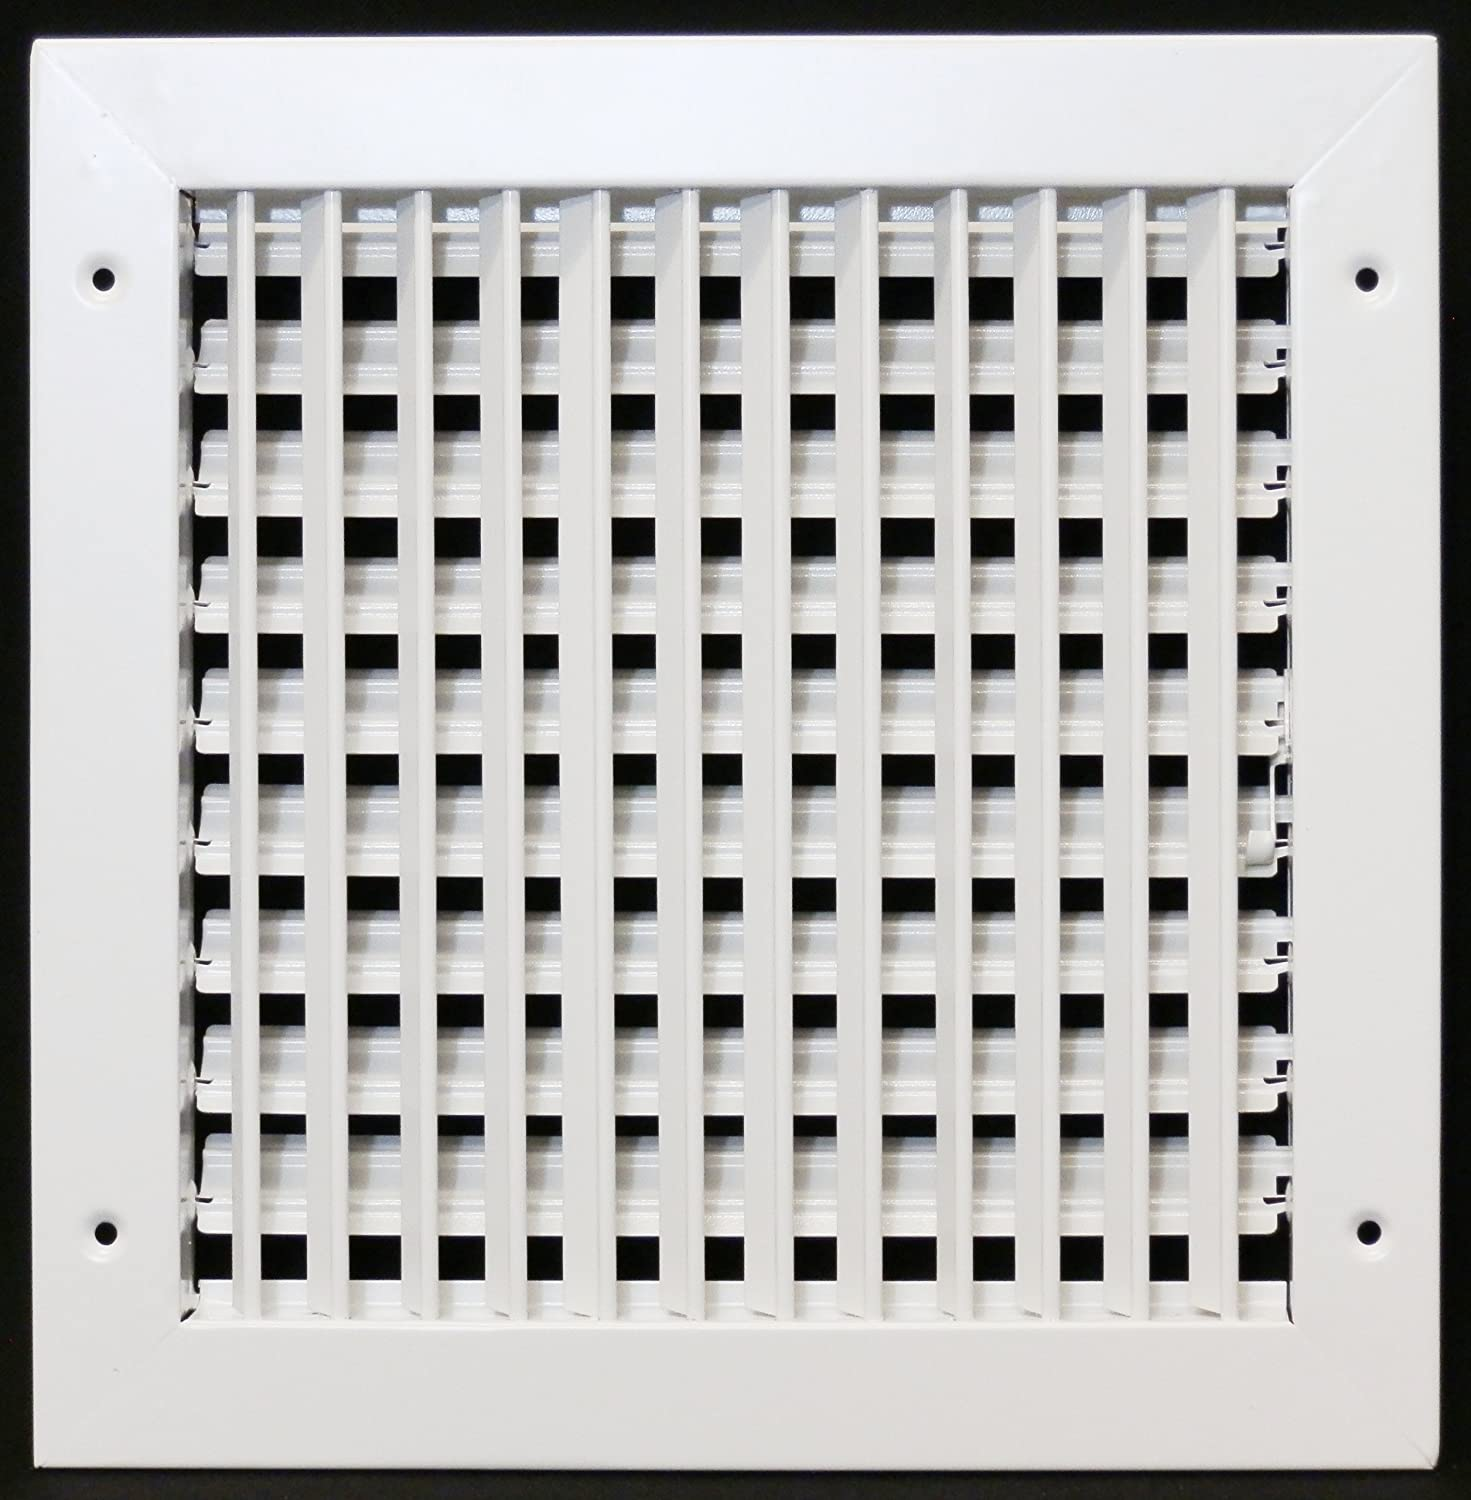 #4B4A5B 10 X 10 ADJUSTABLE AIR SUPPLY DIIFFUSER HVAC Vent Duct  Best 3573 Heating Duct Covers photos with 1471x1500 px on helpvideos.info - Air Conditioners, Air Coolers and more